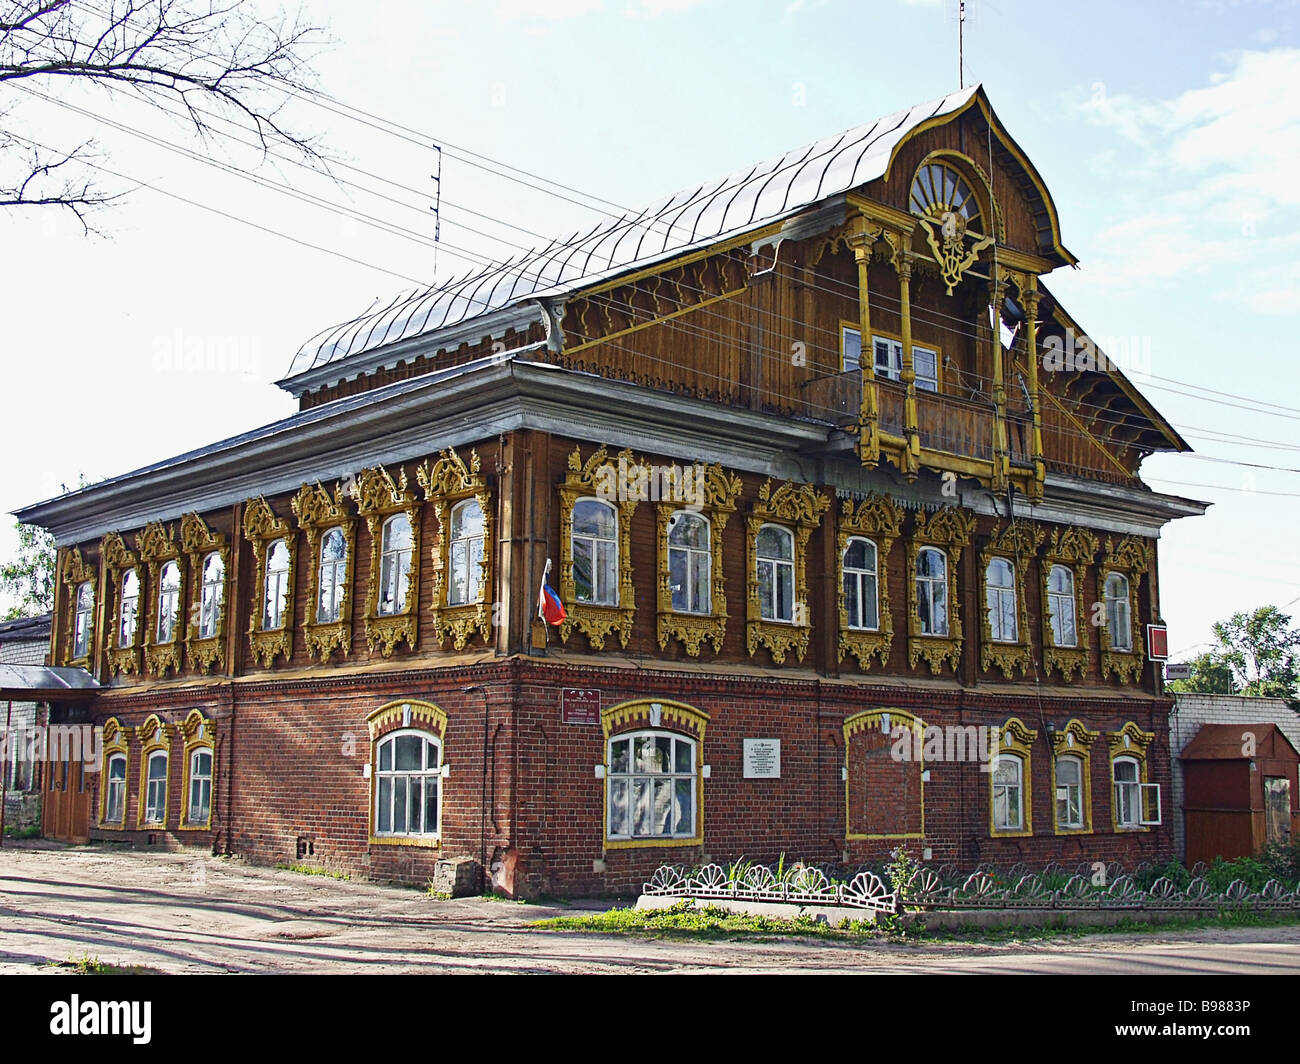 This house with its exquisite carved wooden decorations is a masterpiece of 19th century Russian architecture Kovernino - Stock Image